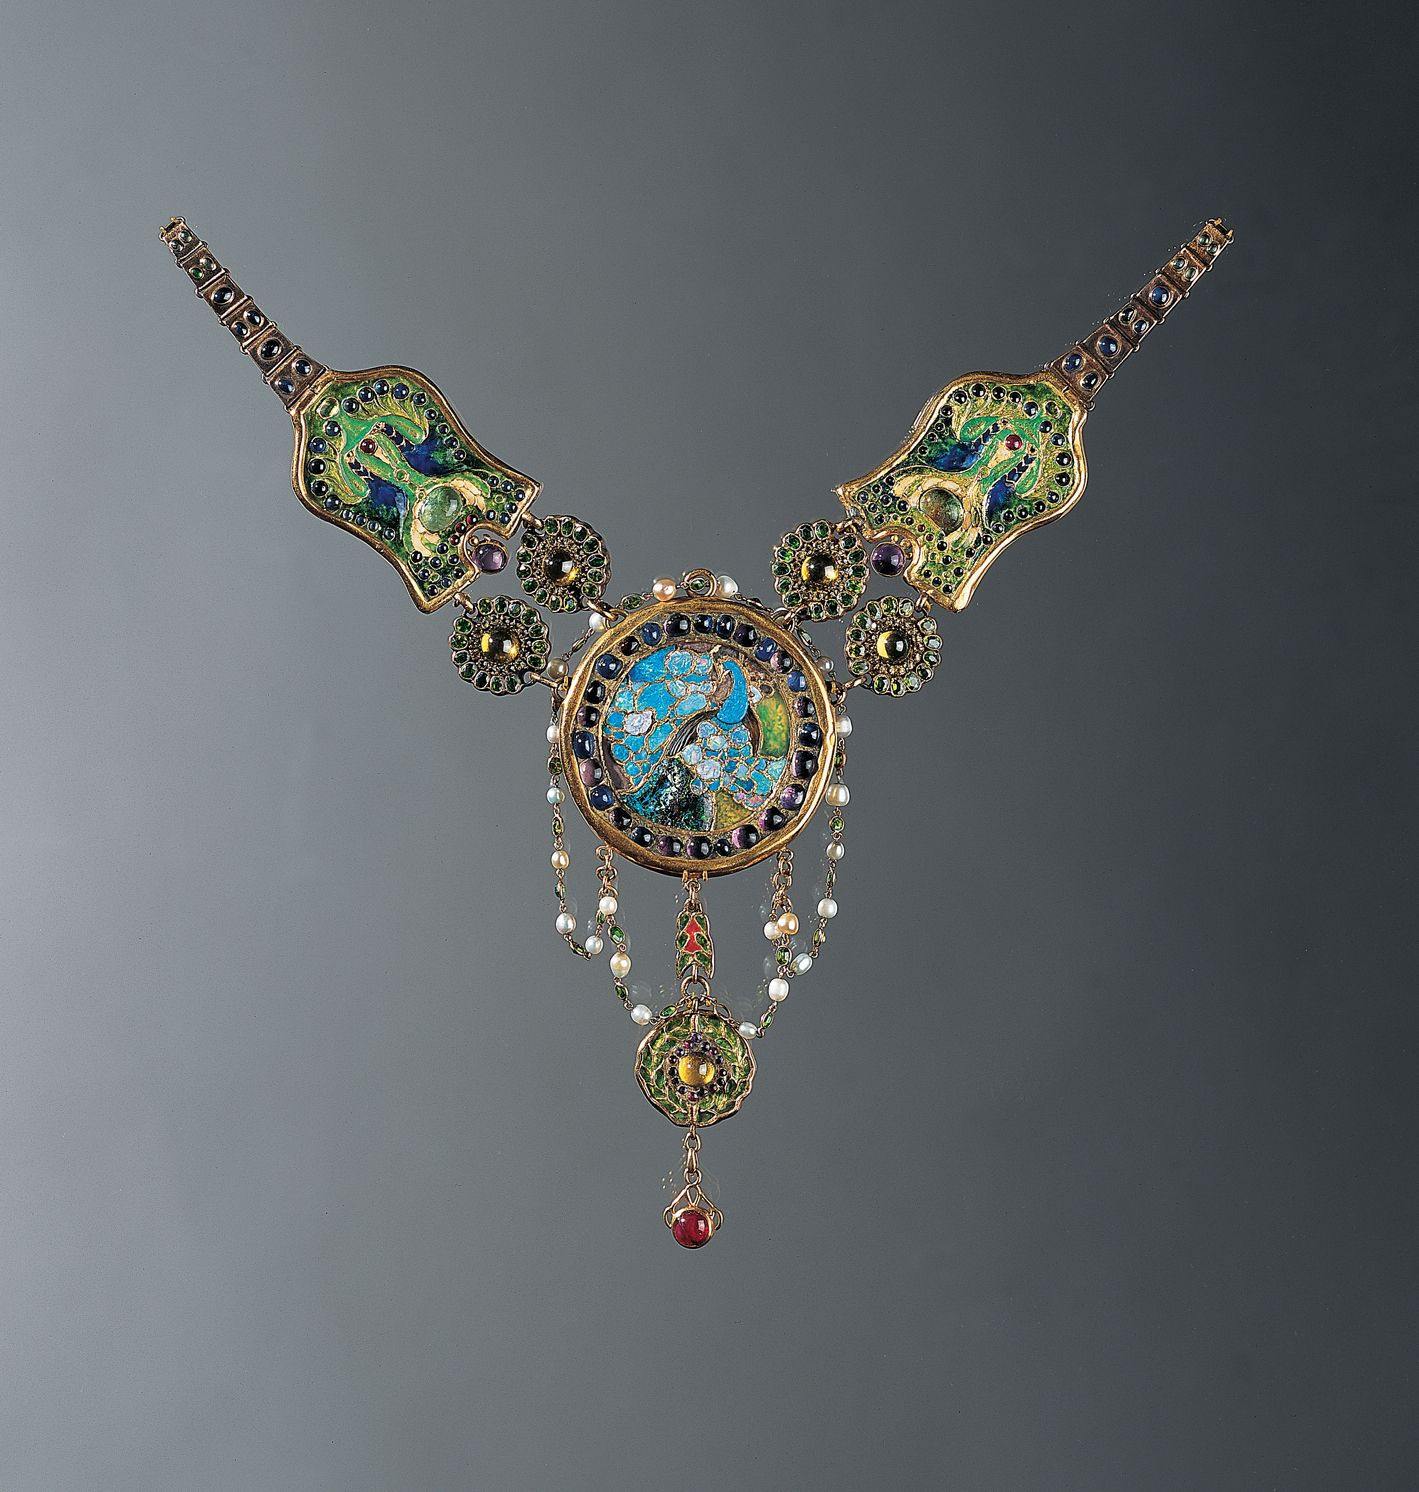 louis comfort tiffany necklace c 1903 6 peacock and flamingo enamel opal amethyst ruby. Black Bedroom Furniture Sets. Home Design Ideas